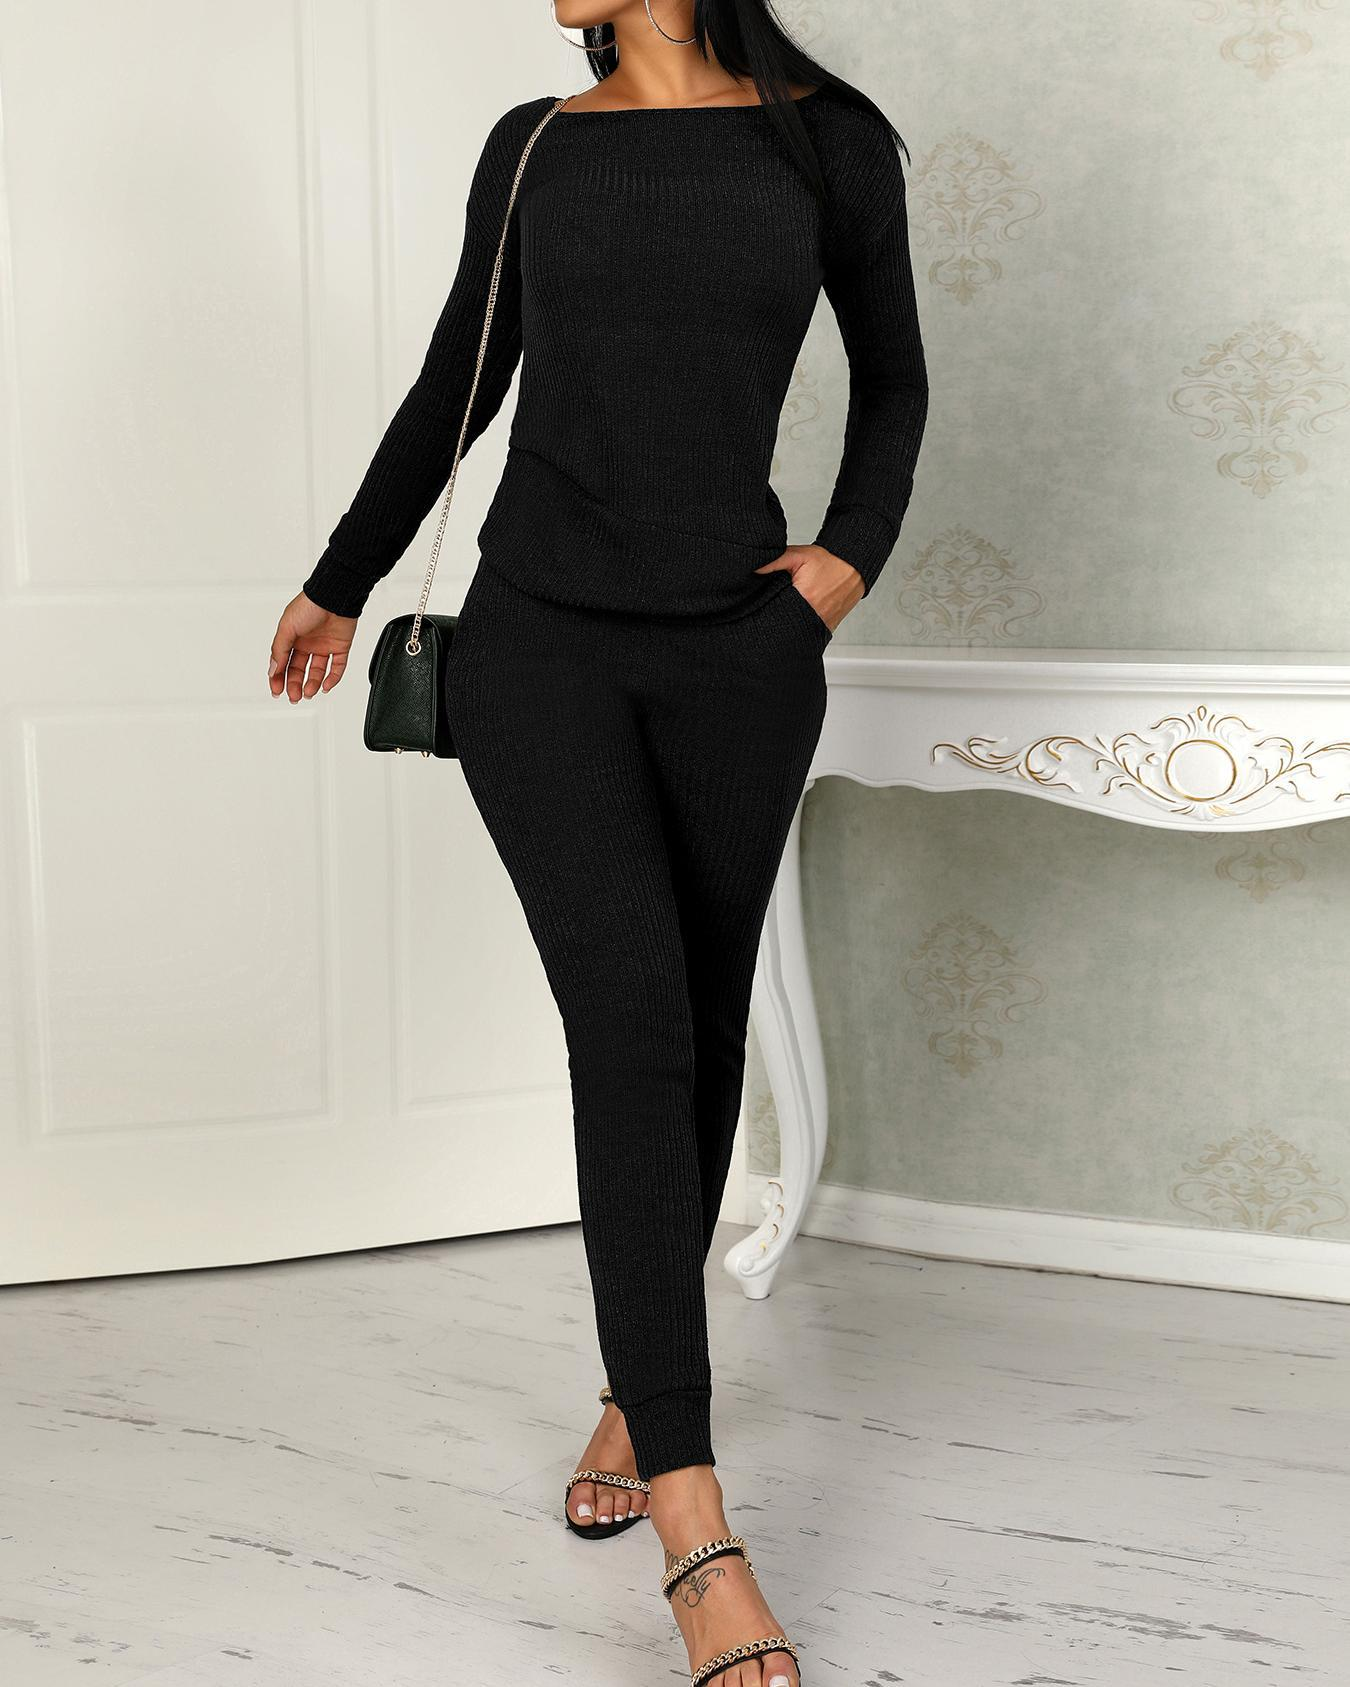 Long Sleeve Drawstring Knitted Top & Pants Set, Black